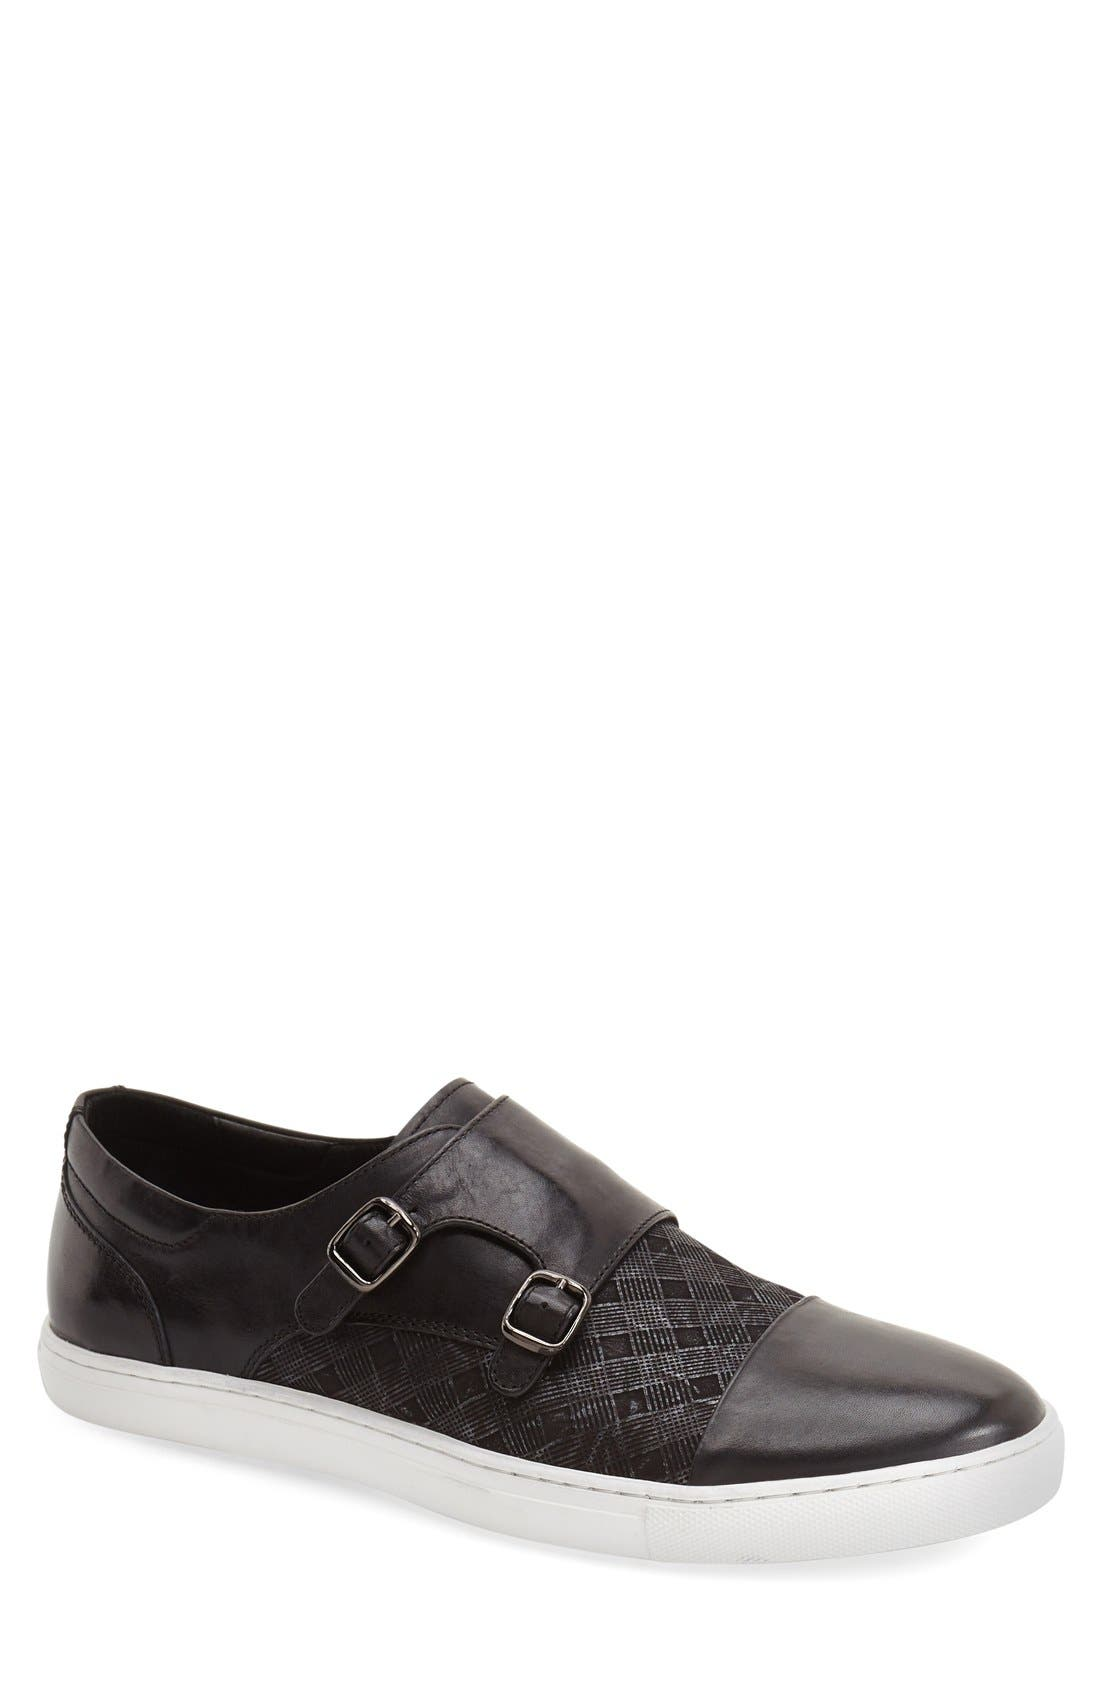 Zanzara 'Mix' Slip-On (Men)